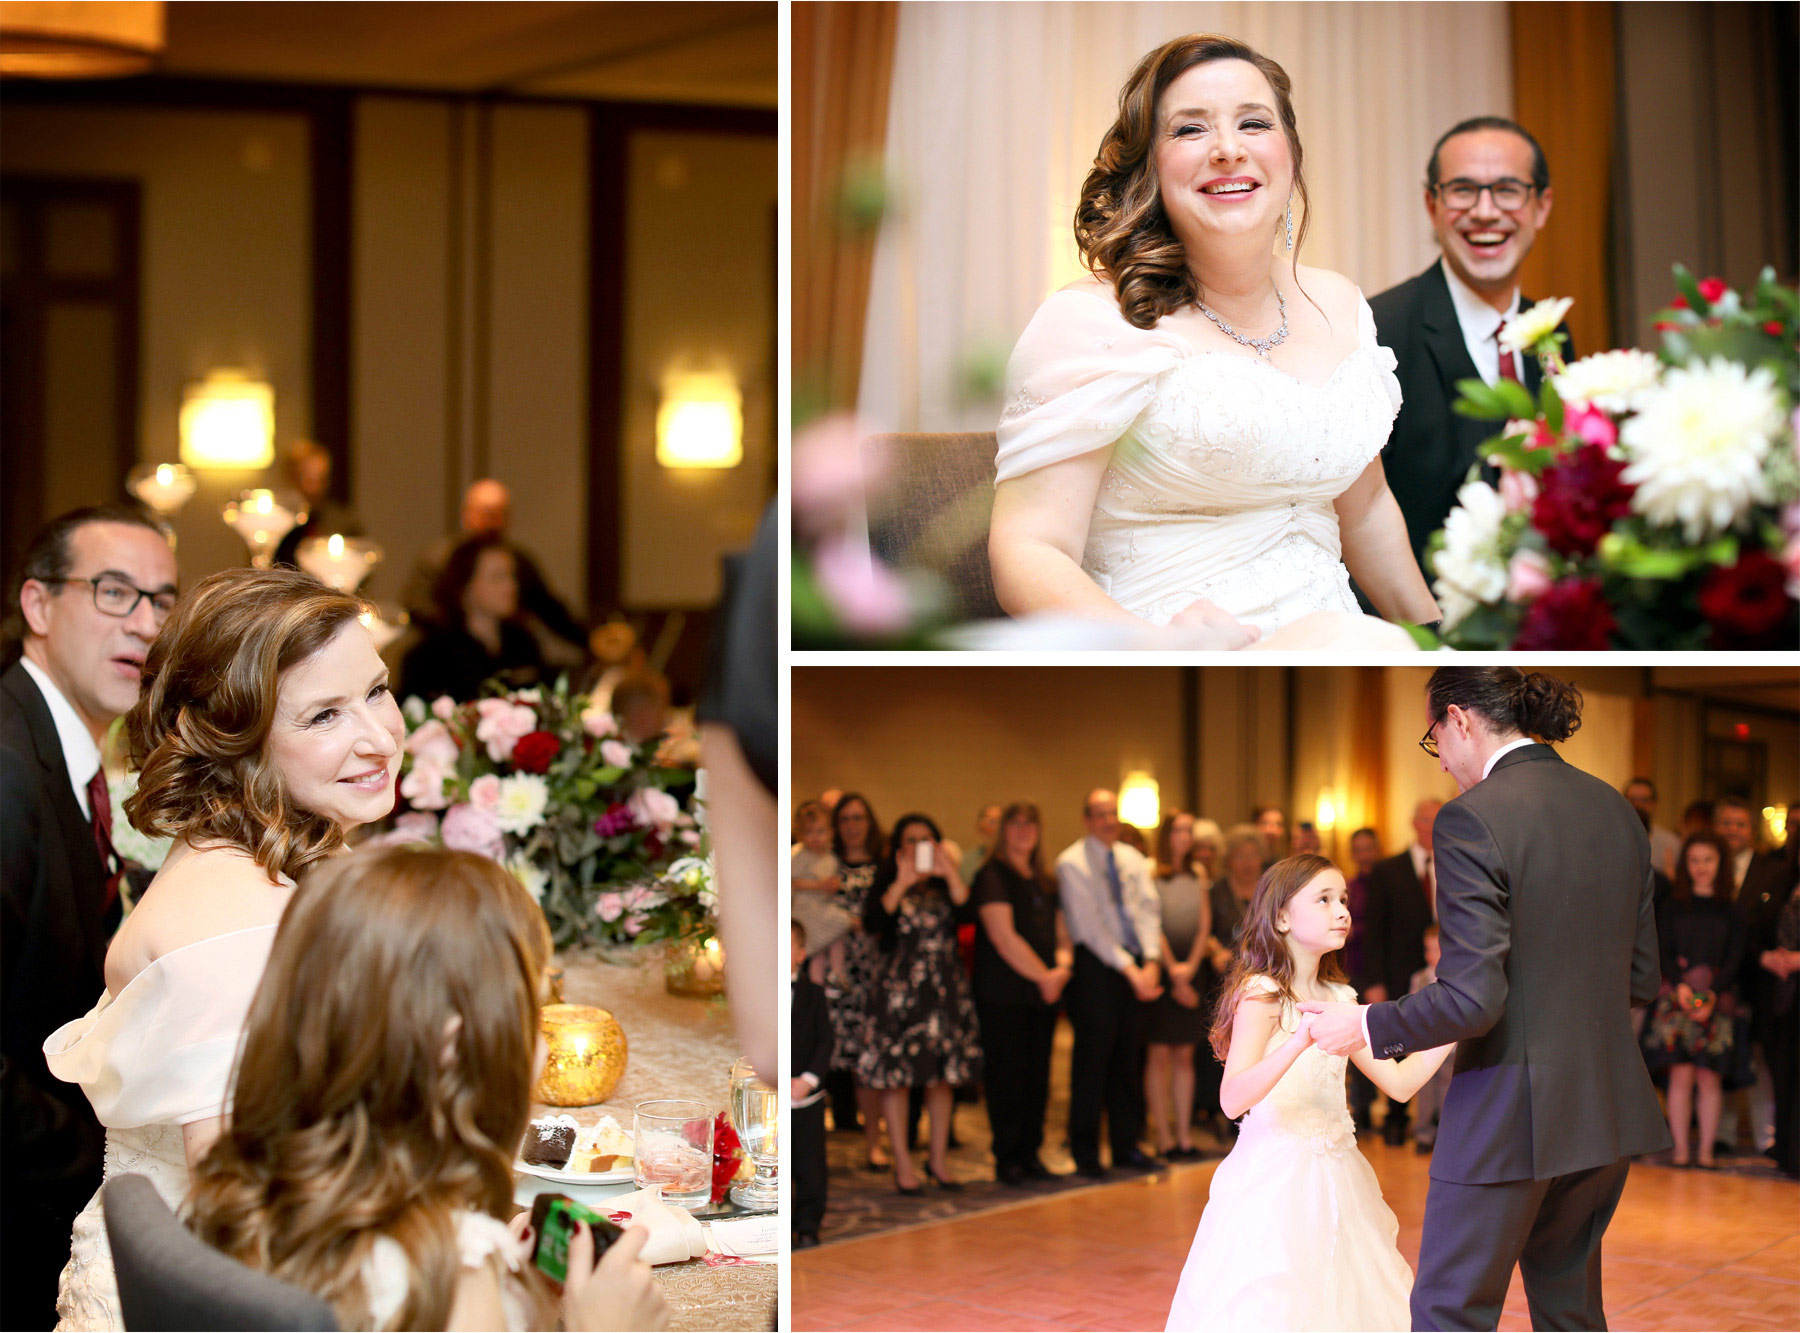 17-Minnetonka-Minnesota-Wedding-Photographer-by-Andrew-Vick-Photography-Winter-Marriott-Southwest-Reception-Bride-Groom-Speeches-Dance-Flower-Girl-Elizabeth-and-Brian.jpg.jpg